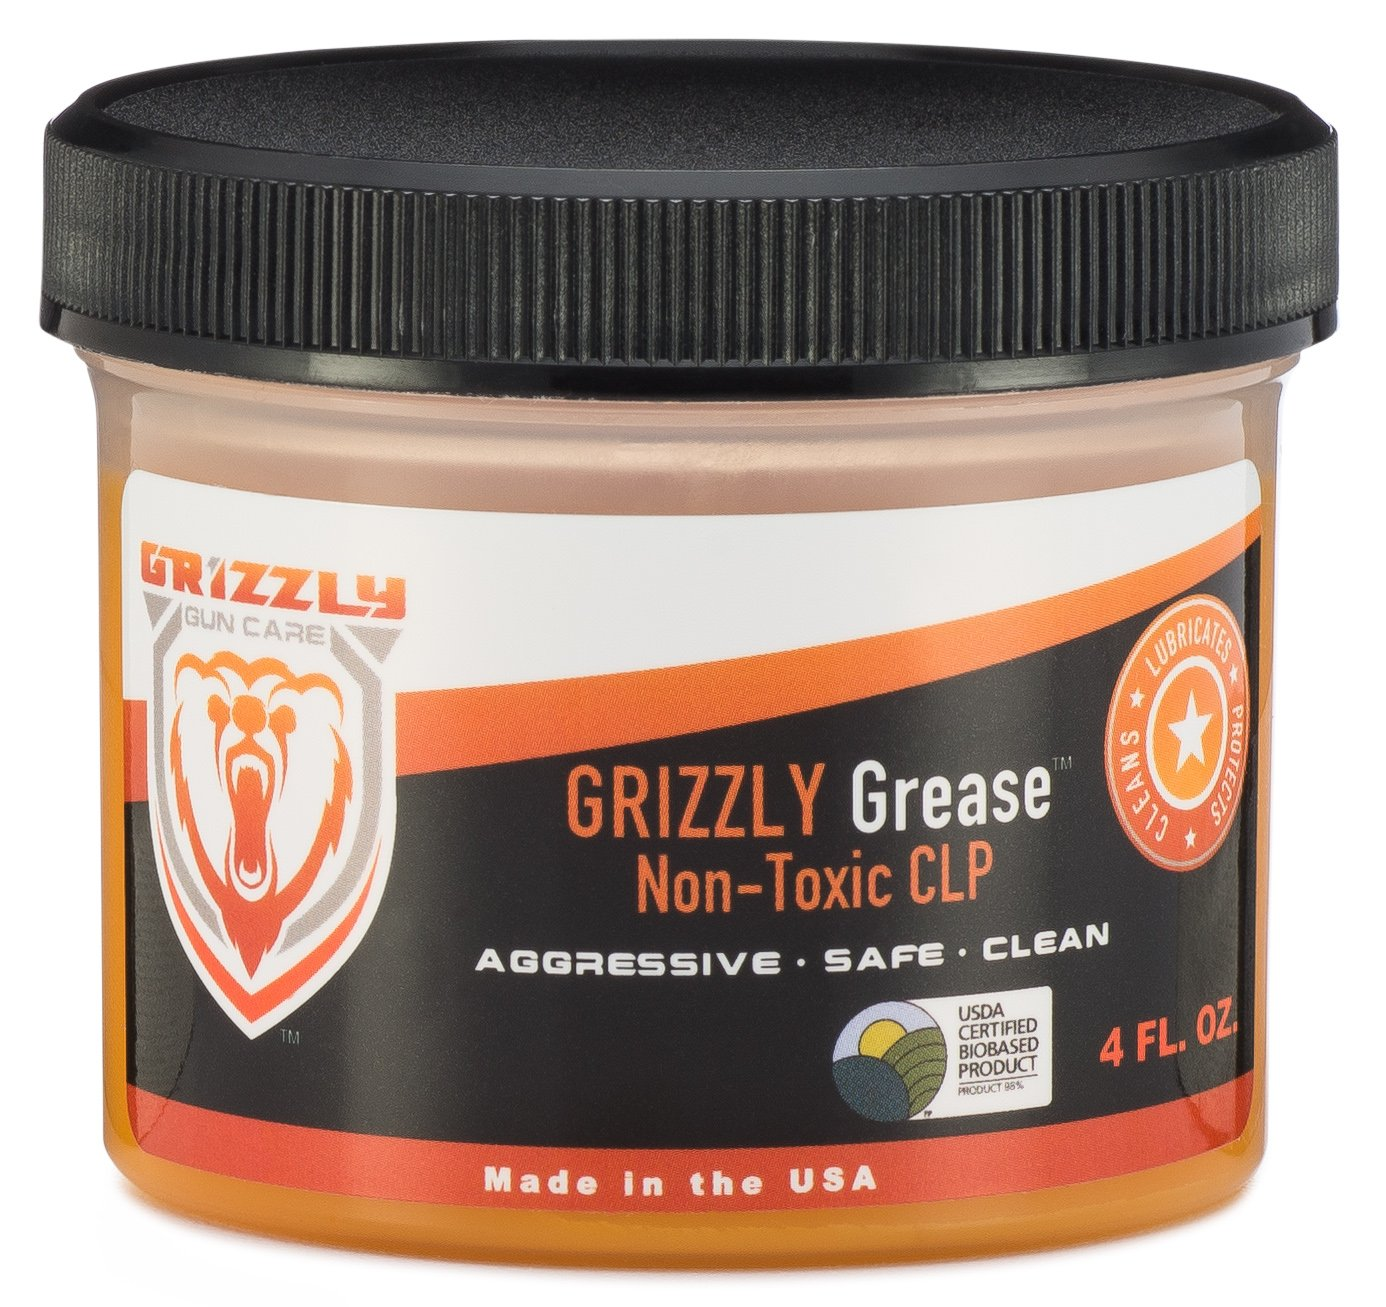 Grizzly Grease Non-Toxic Gun Cleaner